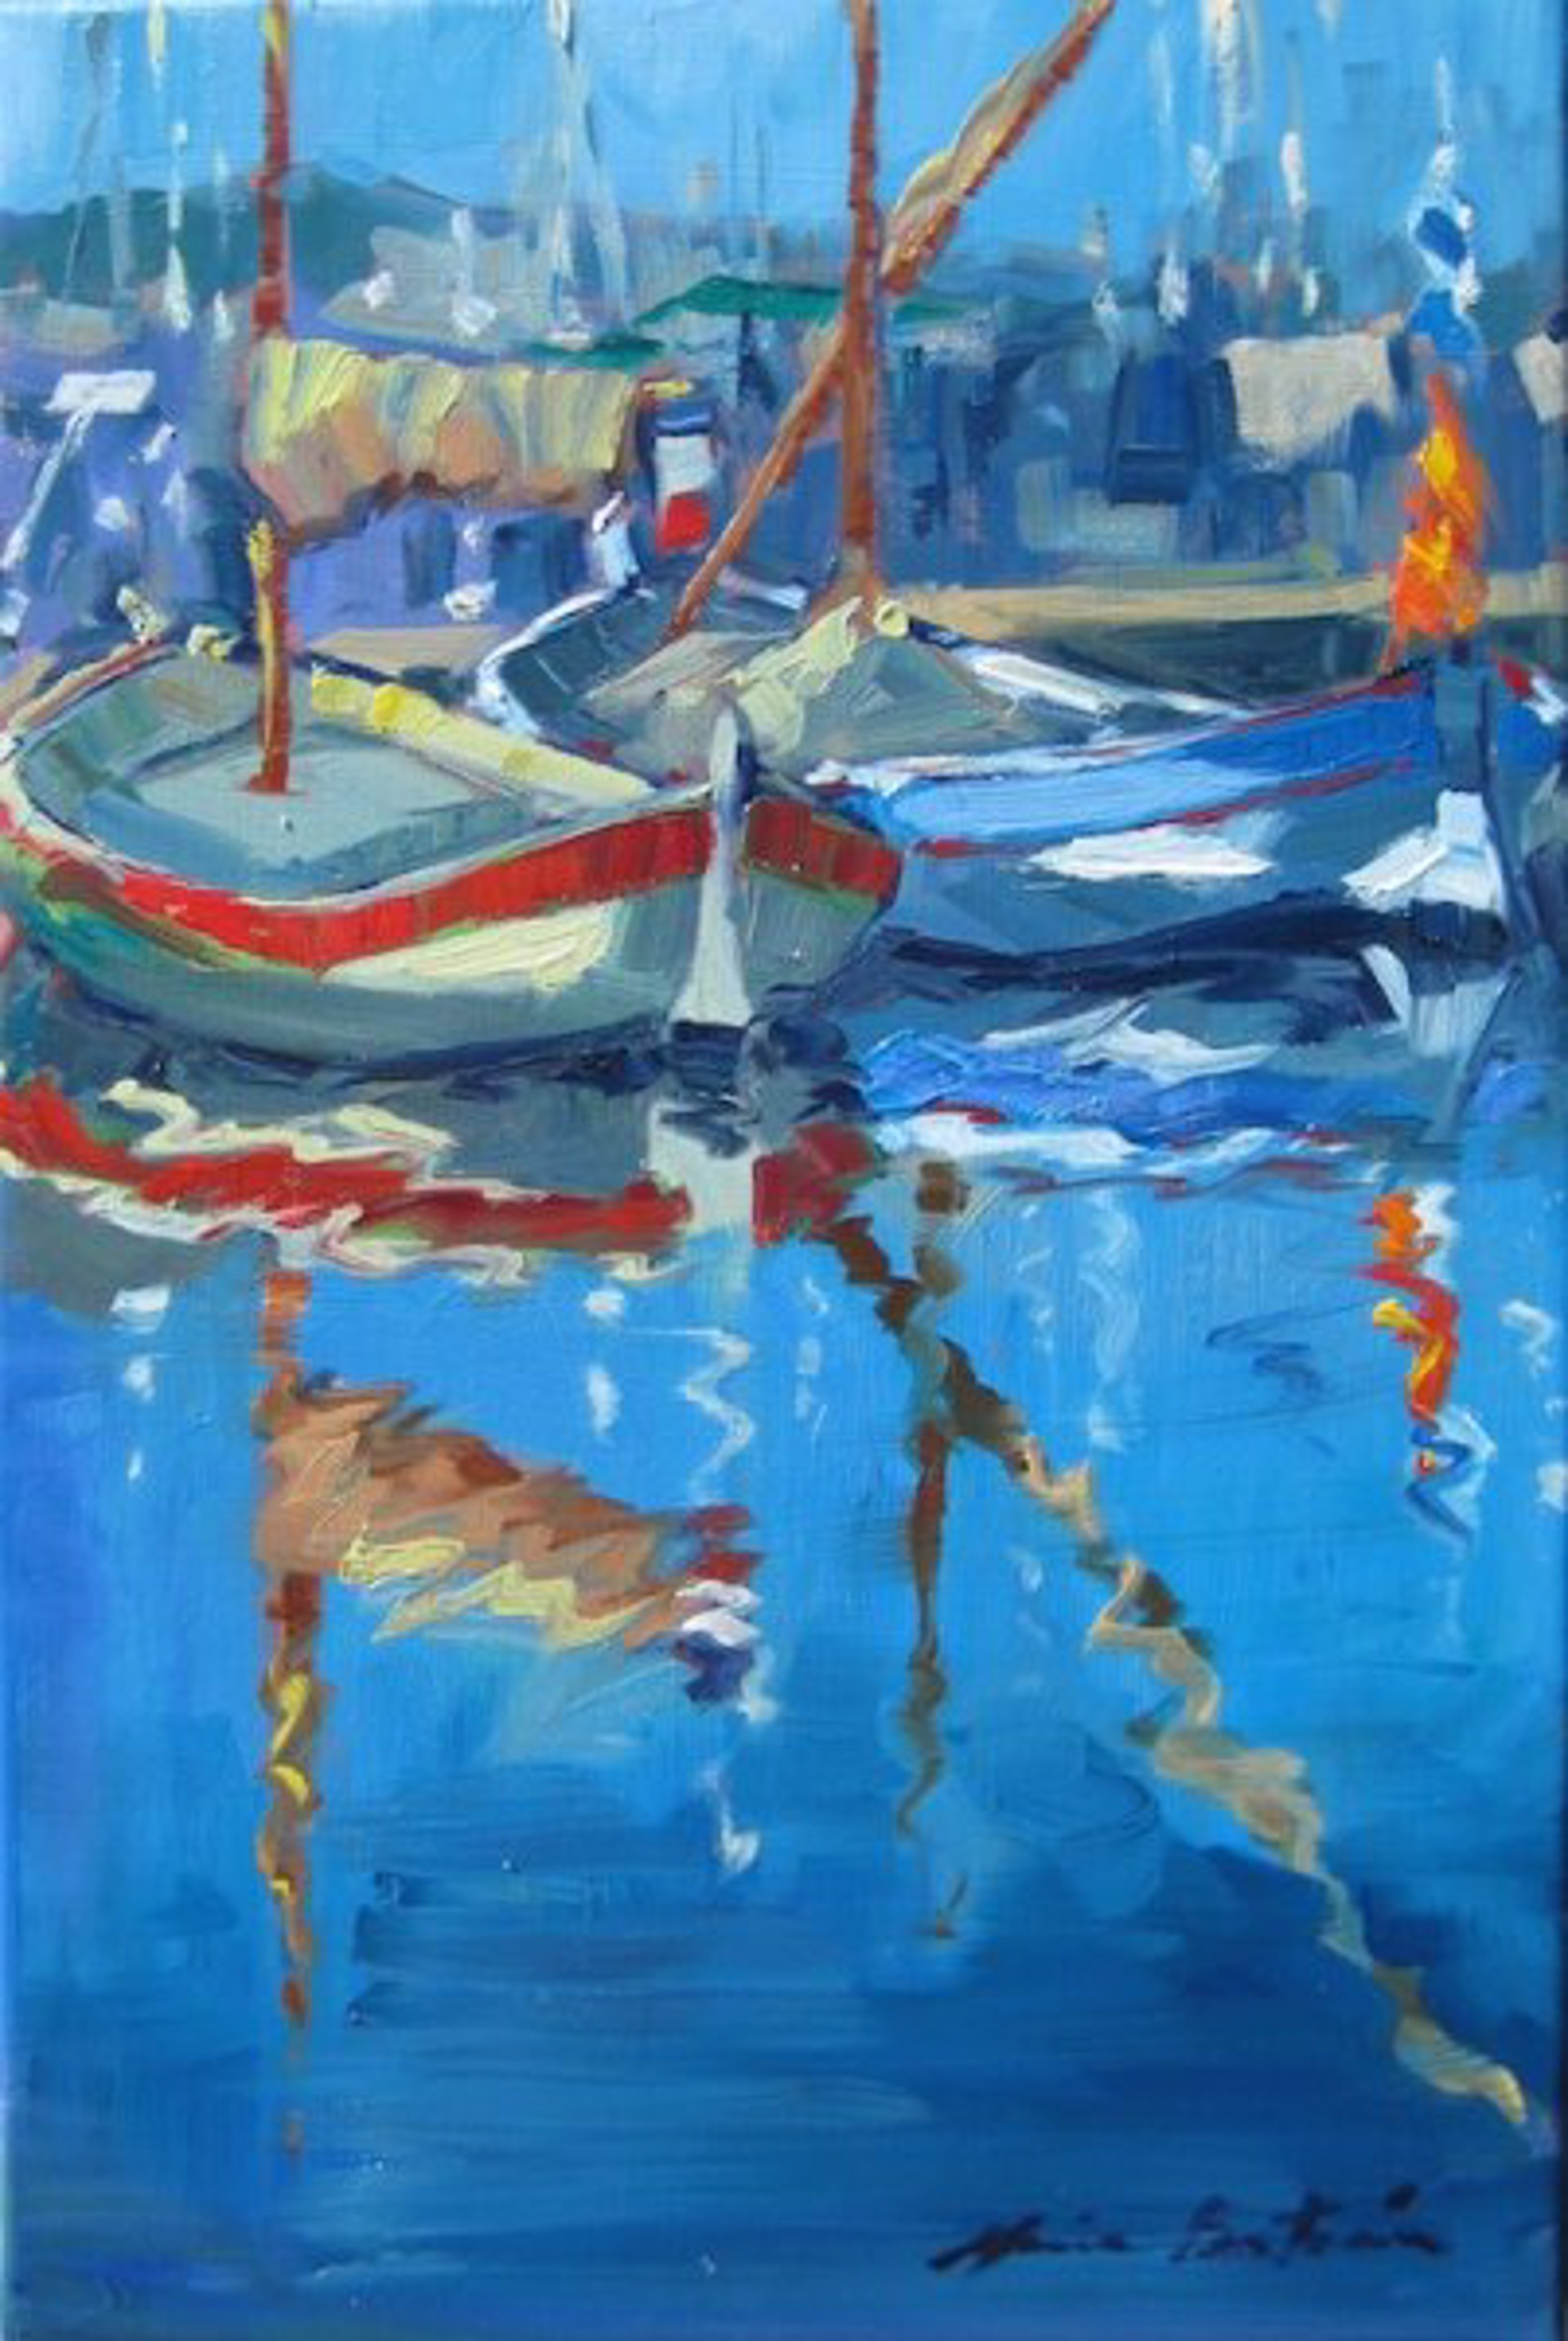 Reflections Of The Masts by Maria Bertrán